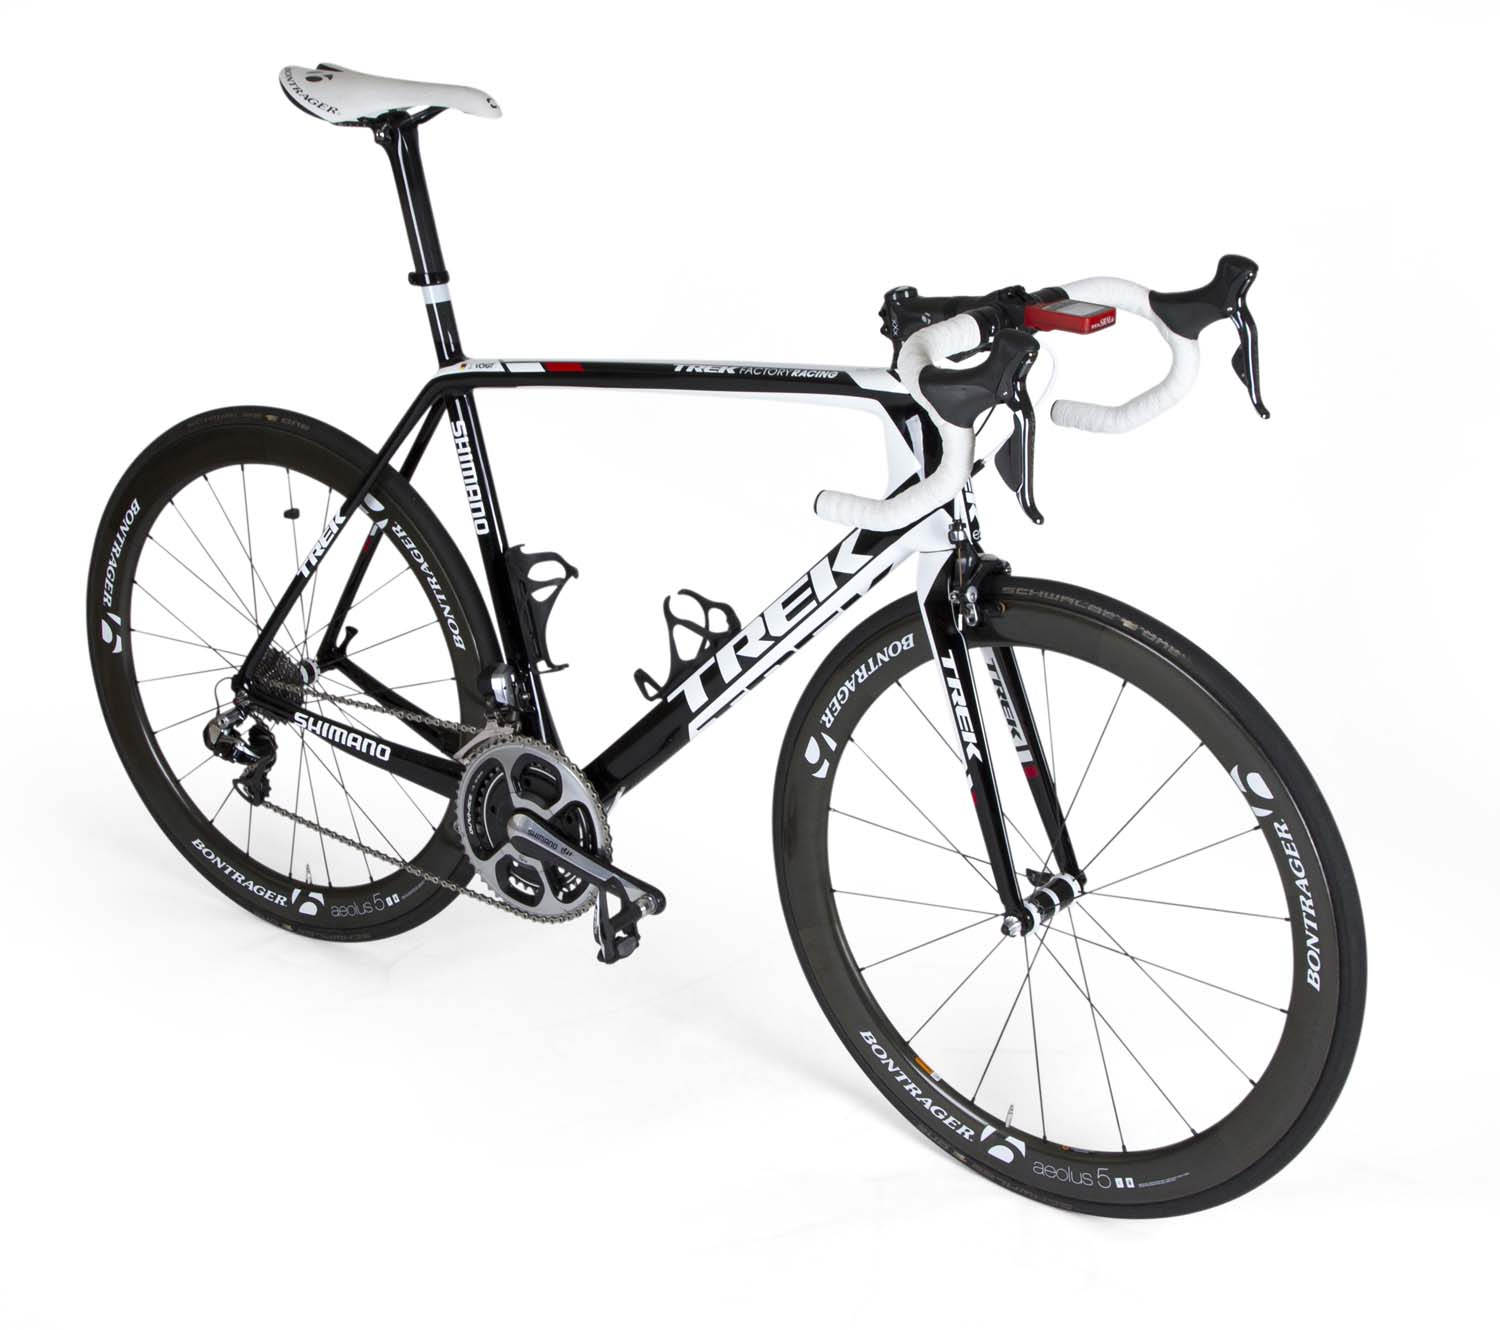 TFR_Trek_Madone_7 Series-Voigt_Main